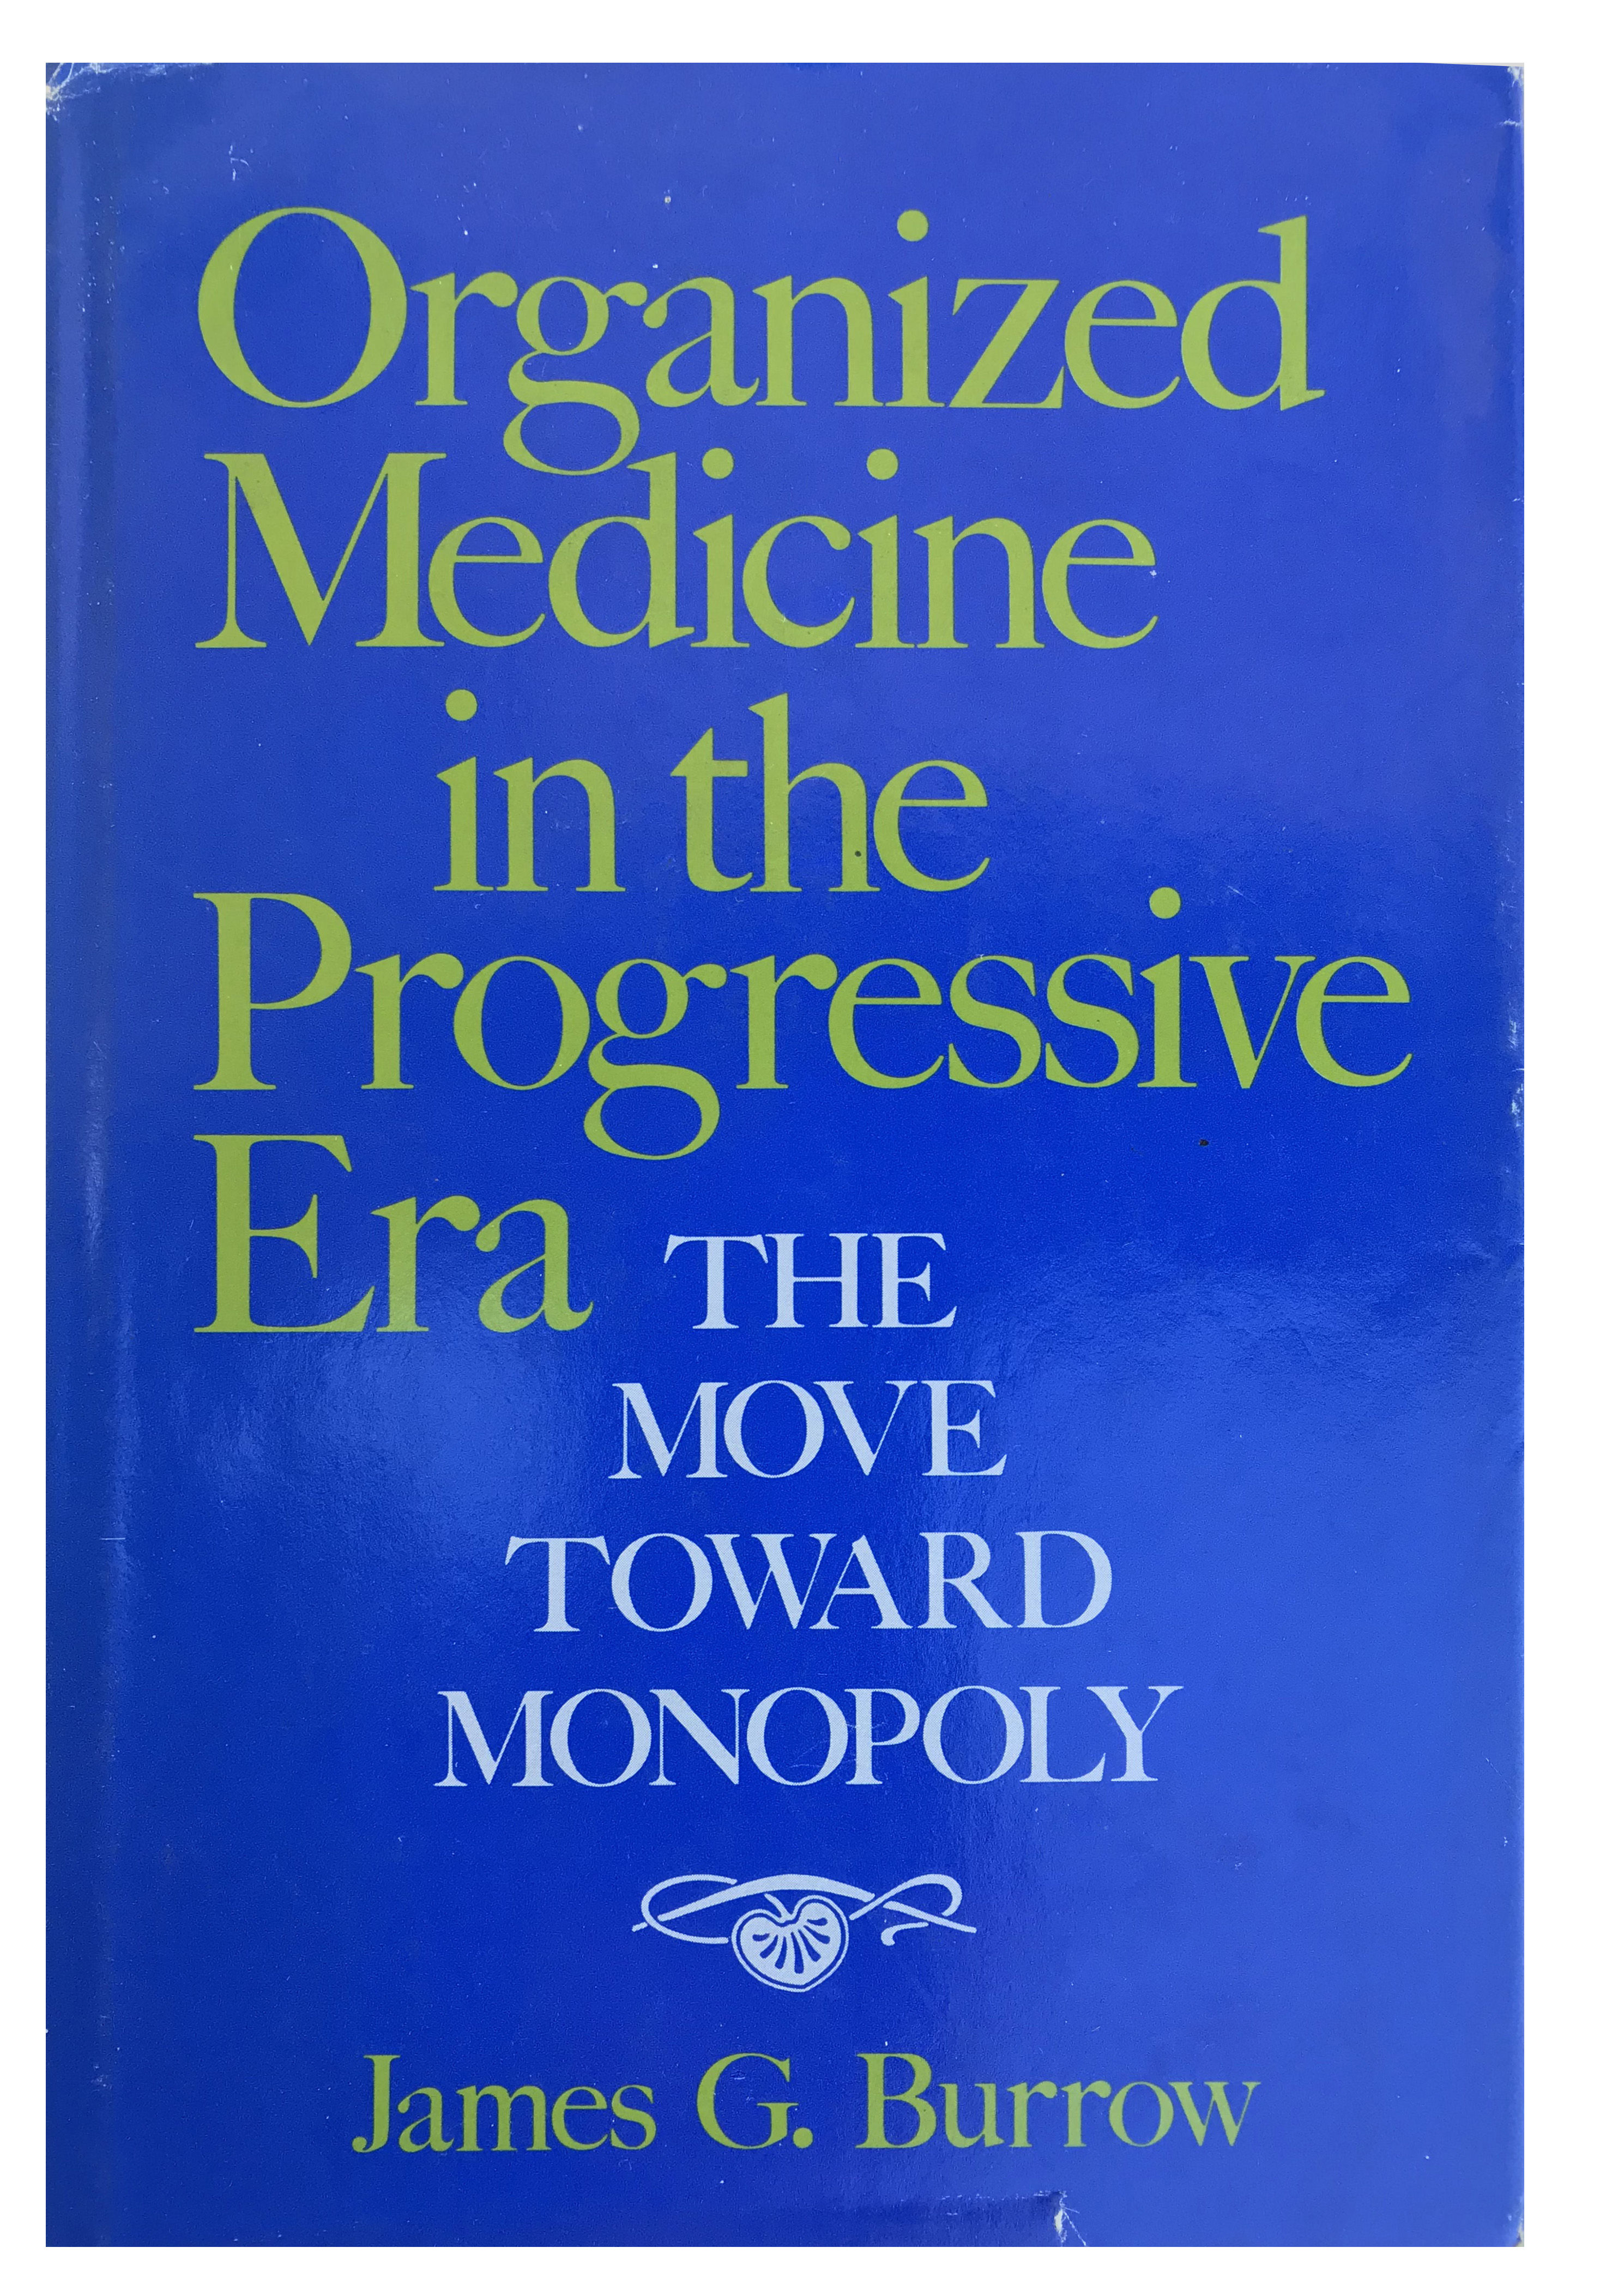 Image for Organized Medicine in the Progressive Era; The Move Toward Monopoly.